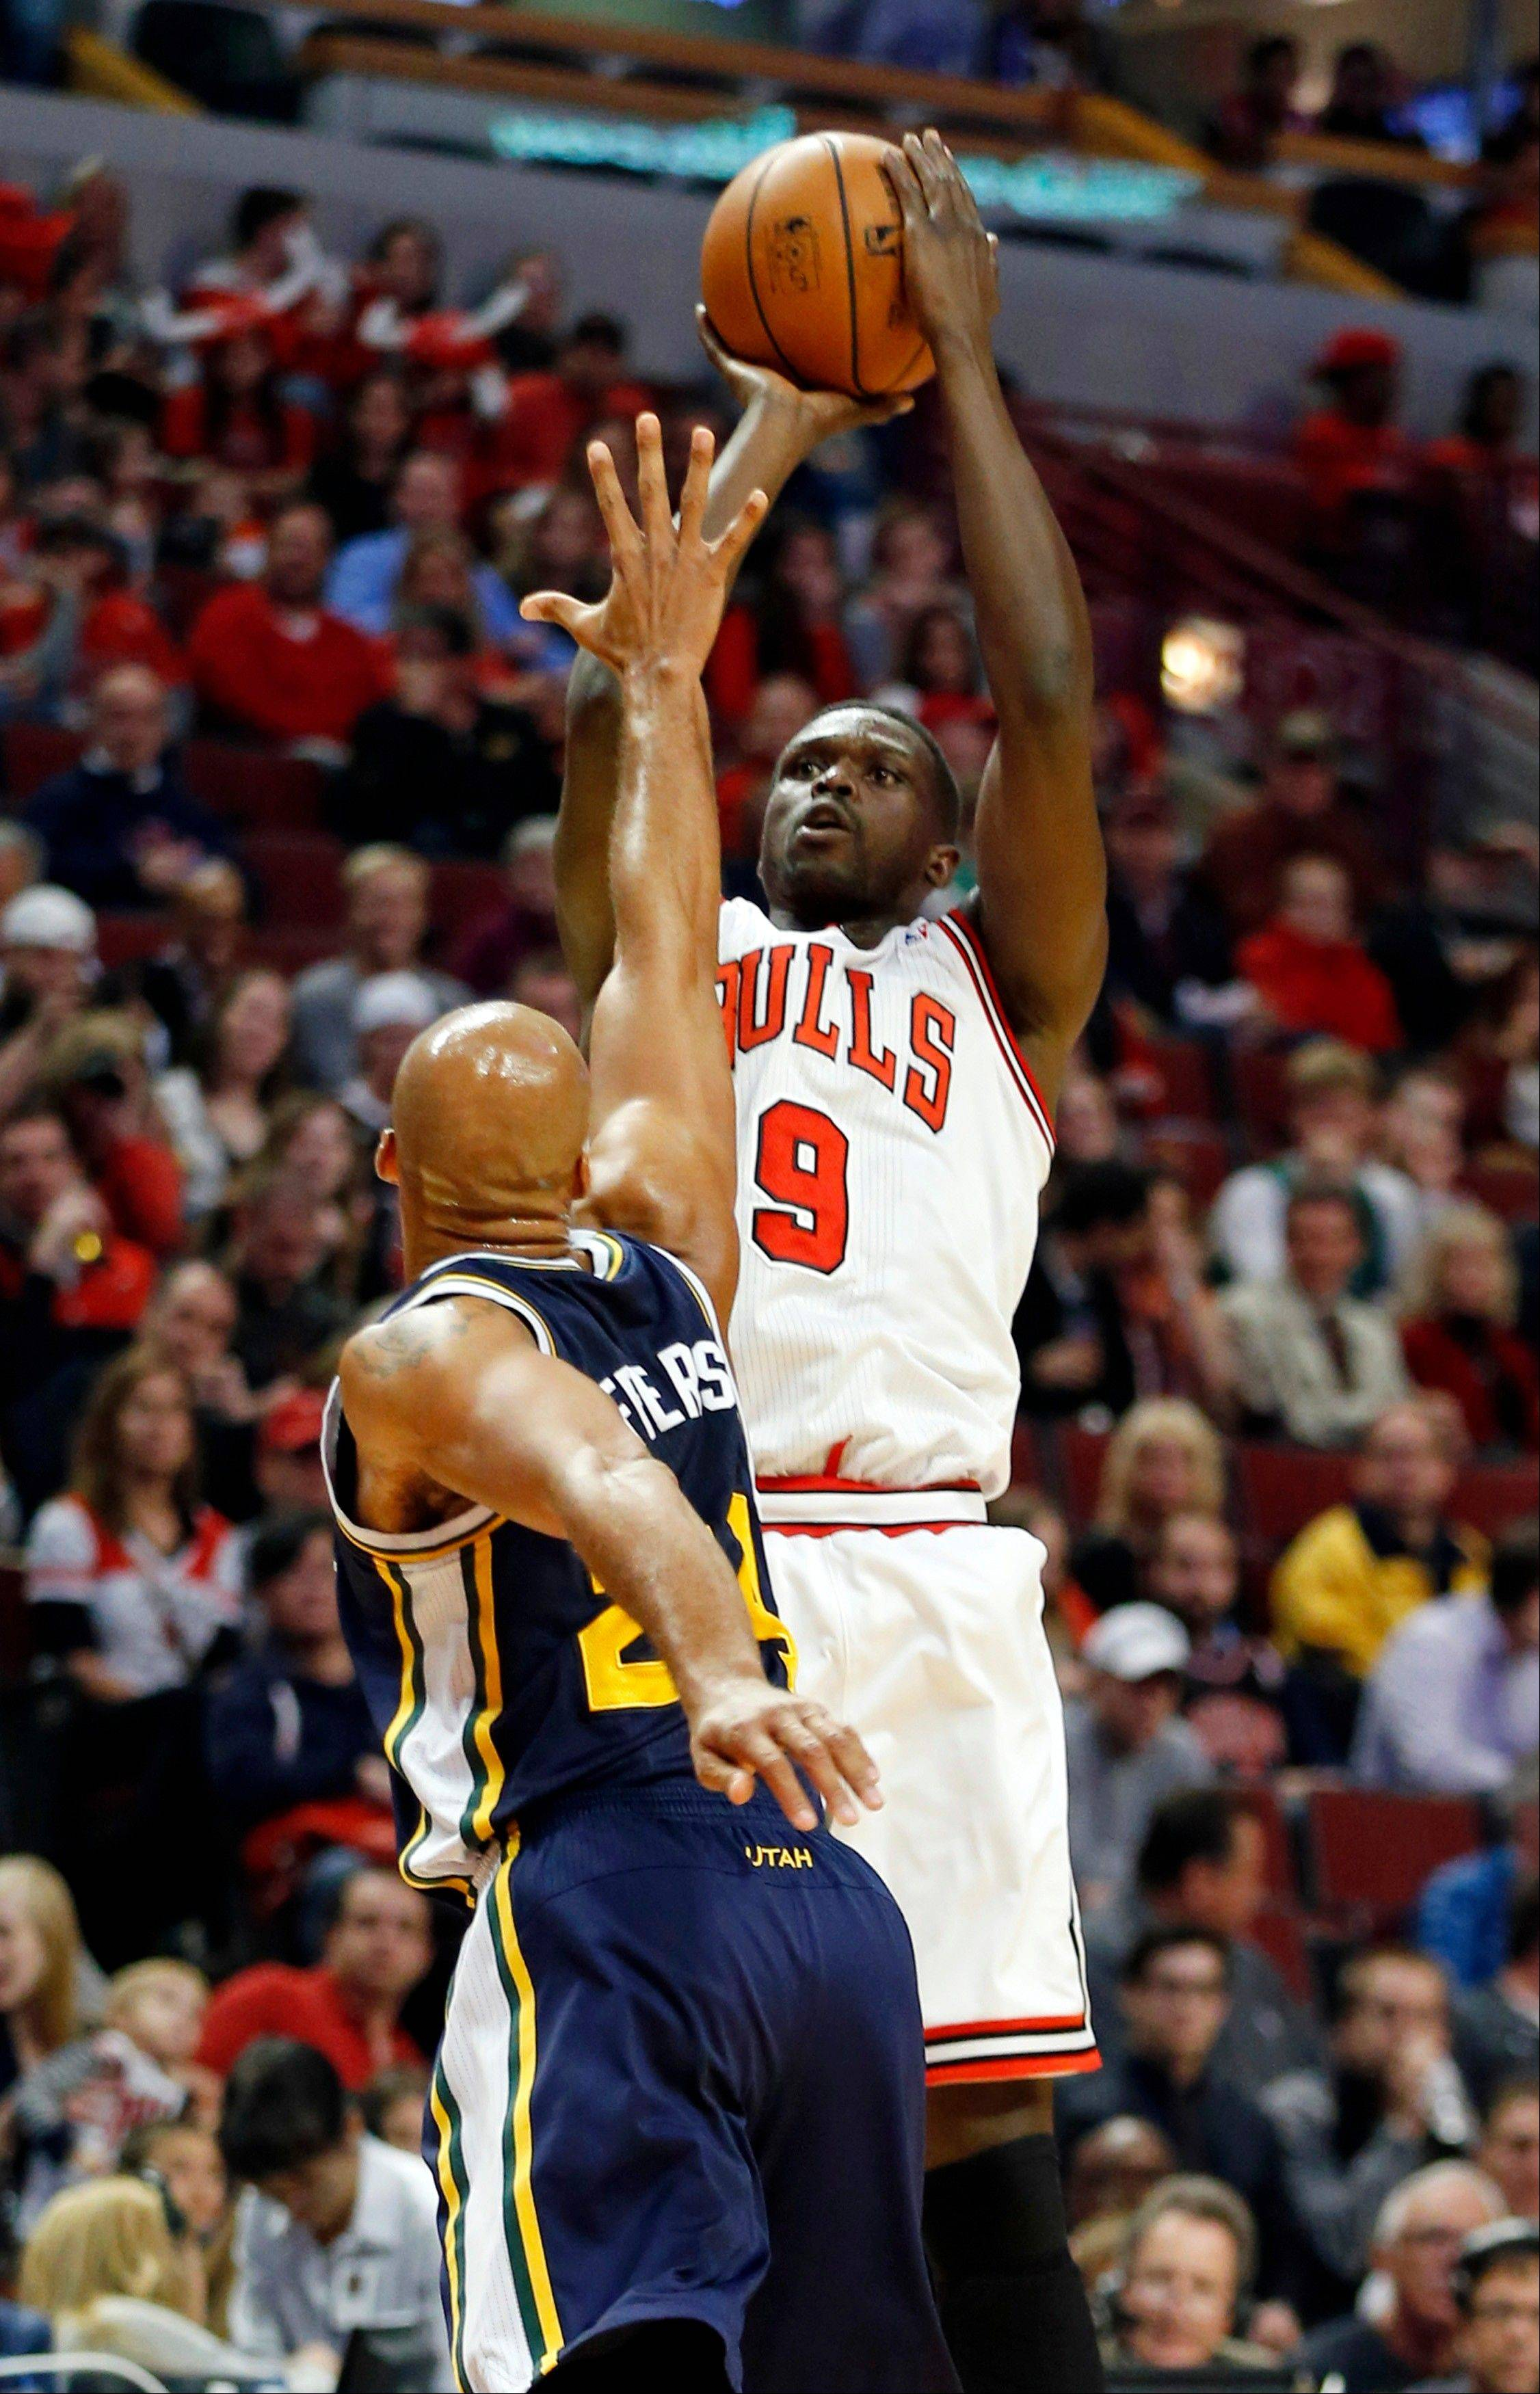 Chicago Bulls forward Luol Deng (9) shoots over Utah Jazz forward Richard Jefferson during the first quarter of an NBA basketball game in Chicago, Friday, Nov. 8, 2013. (AP Photo/Kamil Krzaczynski)